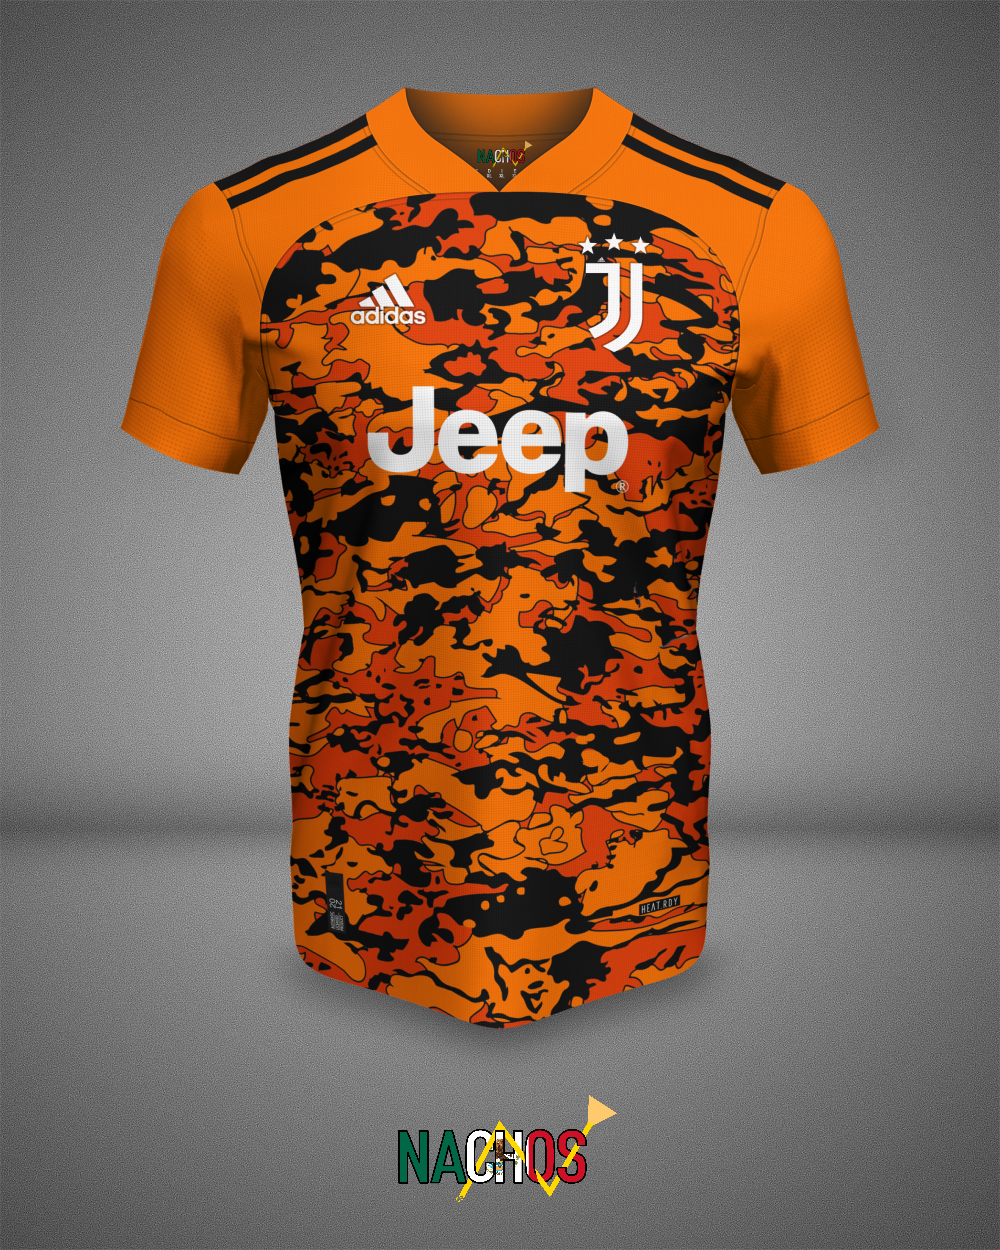 13+ Juventus Orange Full Kit